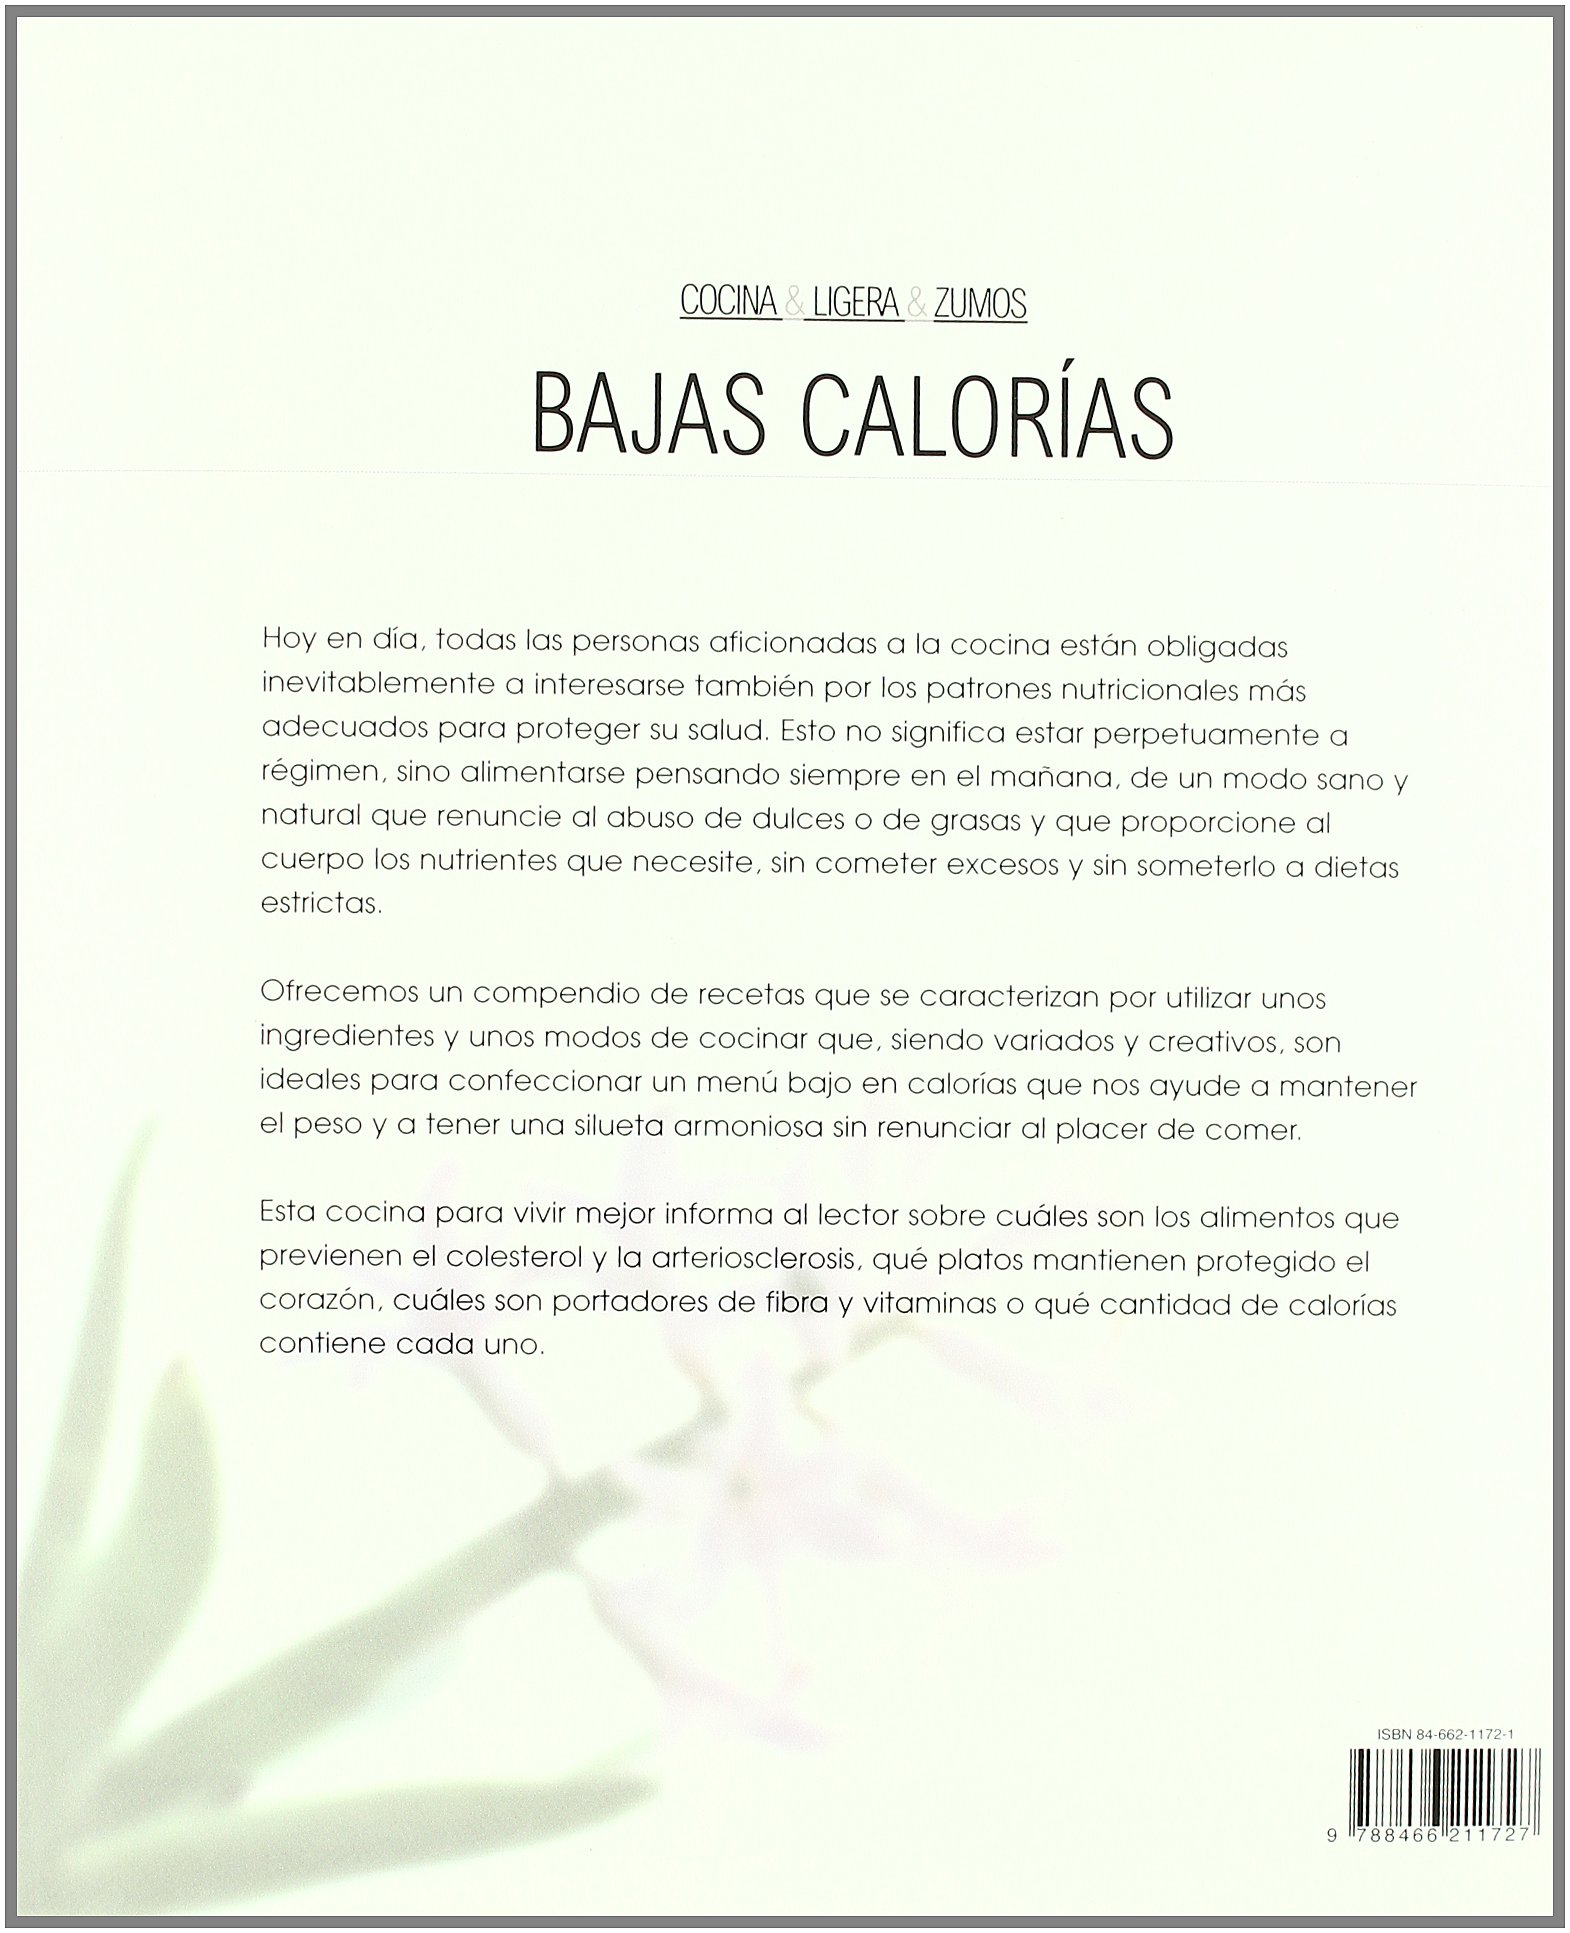 Bajas Calorias/ Low Calorie Diet: Dieta Sana Y Natural Con Los Ingredientes Mas Variados (Spanish Edition): Gloria Sanjuan: 9788466211727: Amazon.com: Books